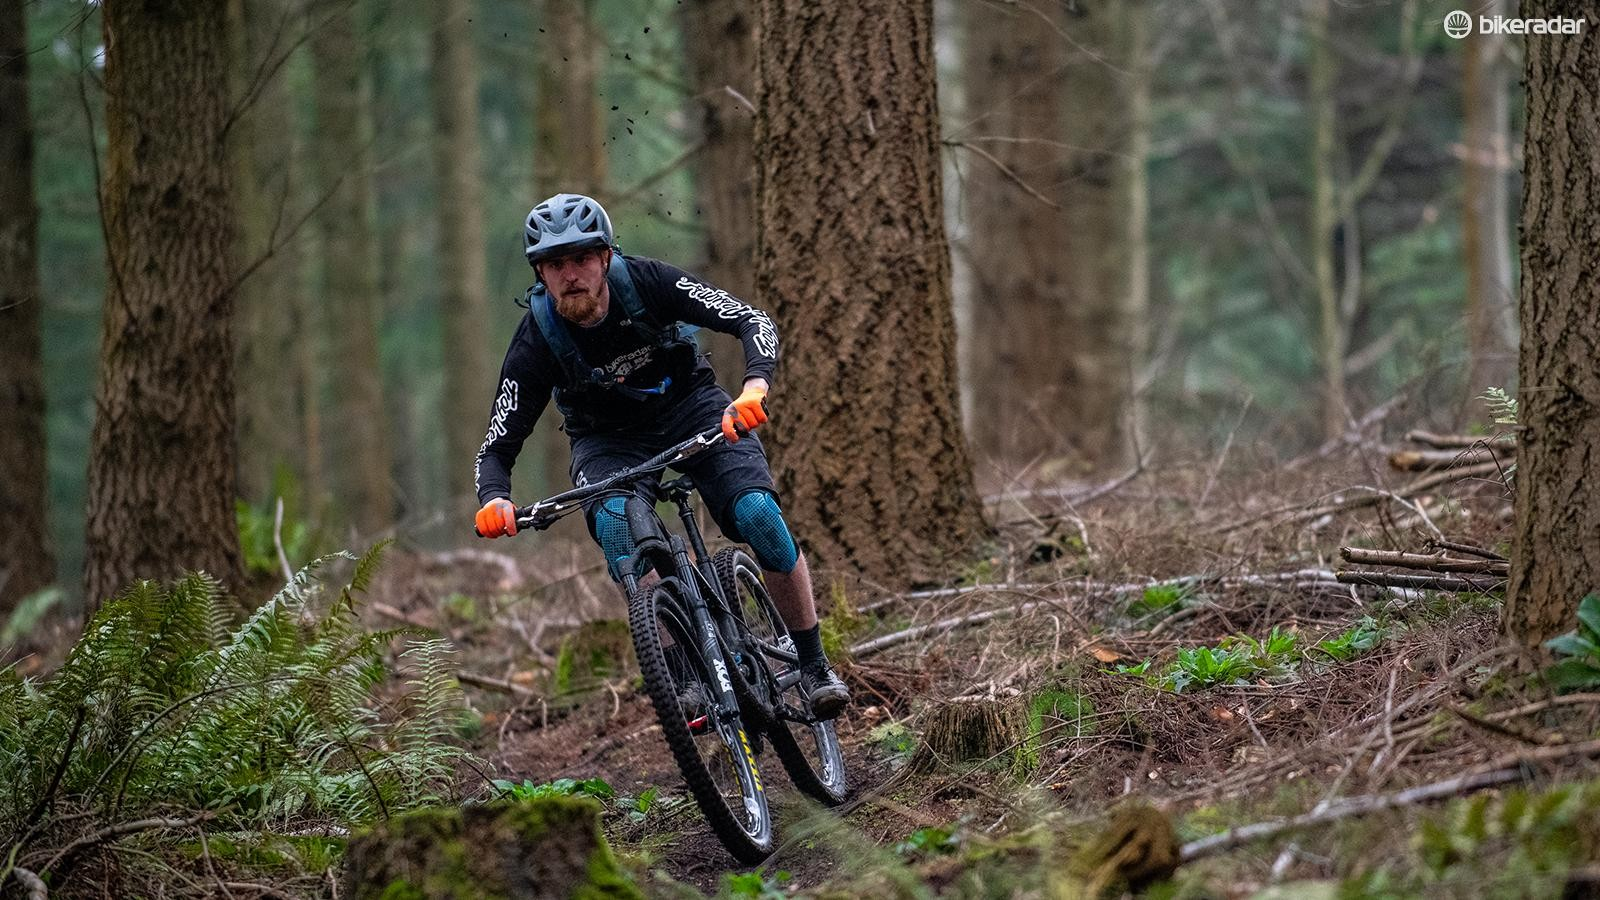 It's not often I get to ride yet-to-be-released bikes on my home trails. Despite the downsizing, the Druid felt remarkably calm at speed, especially when things got steeper